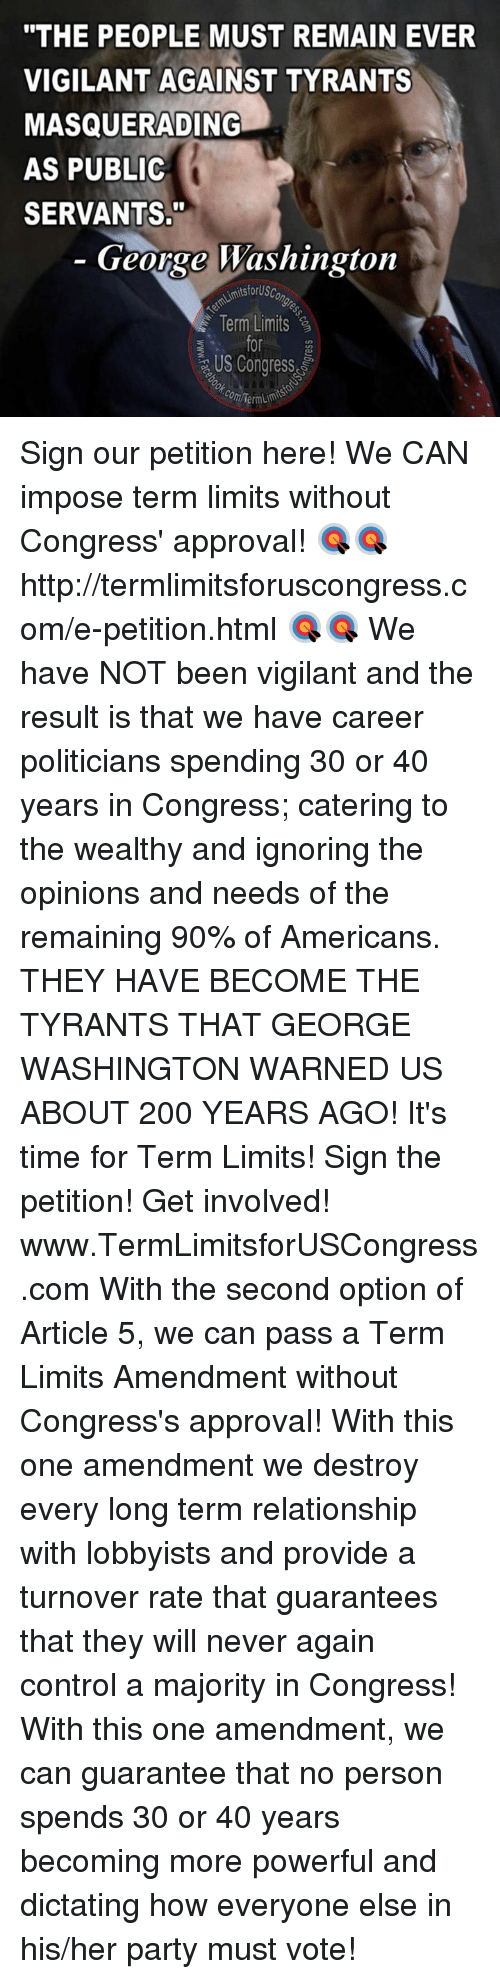 """vigil: """"THE PEOPLE MUST REMAIN EVER  VIGILANT AGAINST TYRANTS  MASQUERADING  AS PUBLIC  SERVANTS.""""  George Washington  AimitsforUsc  Term Limits  US Congress  com Term Sign our petition here! We CAN impose term limits without Congress' approval! 🎯🎯http://termlimitsforuscongress.com/e-petition.html 🎯🎯  We have NOT been vigilant and the result is that we have career politicians spending 30 or 40 years in Congress; catering to the wealthy and ignoring the opinions and needs of the remaining 90% of Americans.  THEY HAVE BECOME THE TYRANTS THAT GEORGE WASHINGTON WARNED US ABOUT 200 YEARS AGO!  It's time for Term Limits! Sign the petition! Get involved! www.TermLimitsforUSCongress.com  With the second option of Article 5, we can pass a Term Limits Amendment without Congress's approval! With this one amendment we destroy every long term relationship with lobbyists and provide a turnover rate that guarantees that they will never again control a majority in Congress! With this one amendment, we can guarantee that no person spends 30 or 40 years becoming more powerful and dictating how everyone else in his/her party must vote!"""